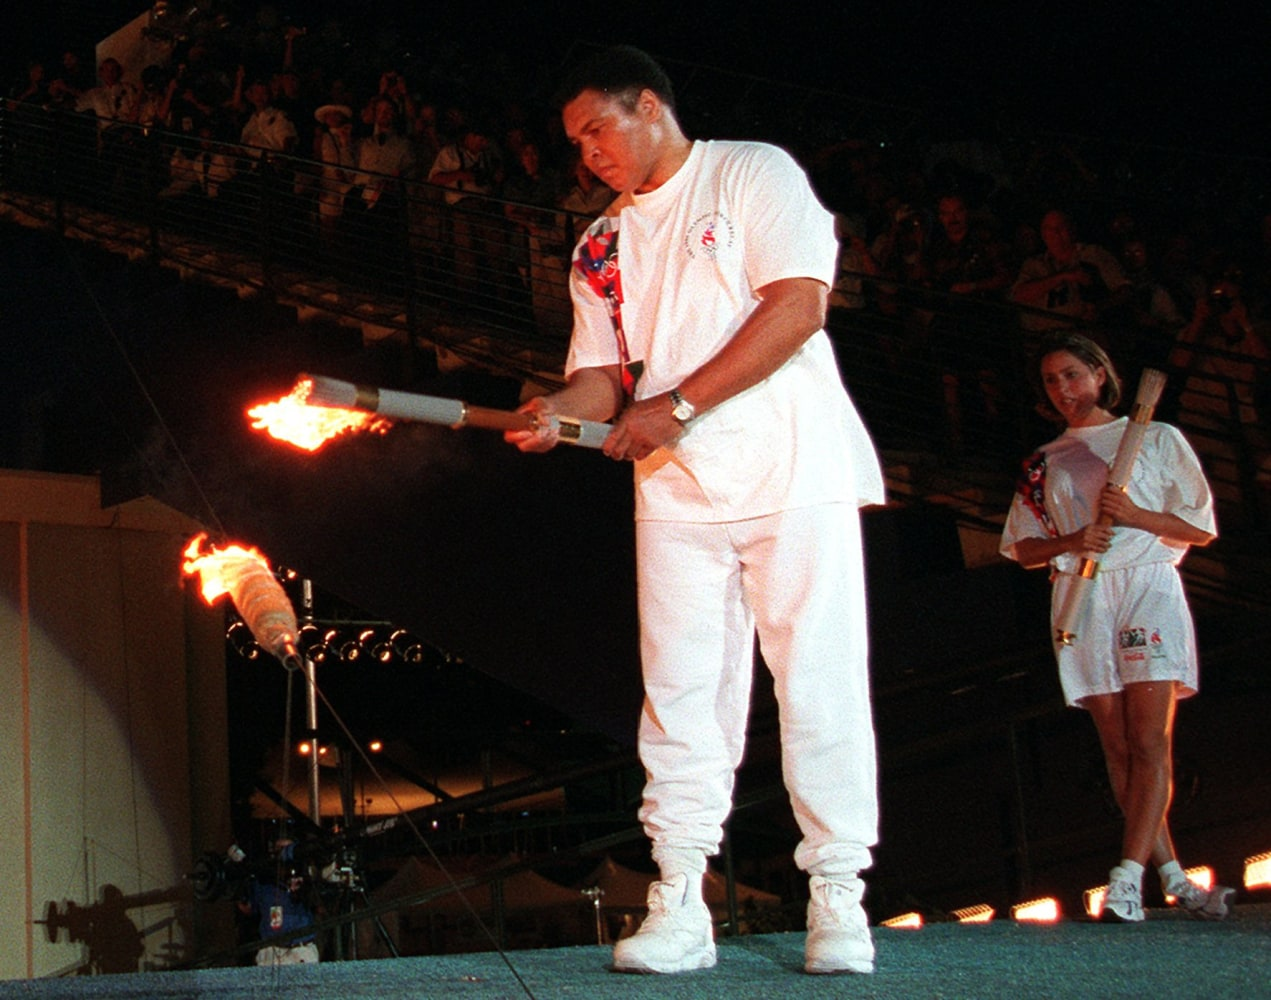 1996 Summer Olympics torch relay